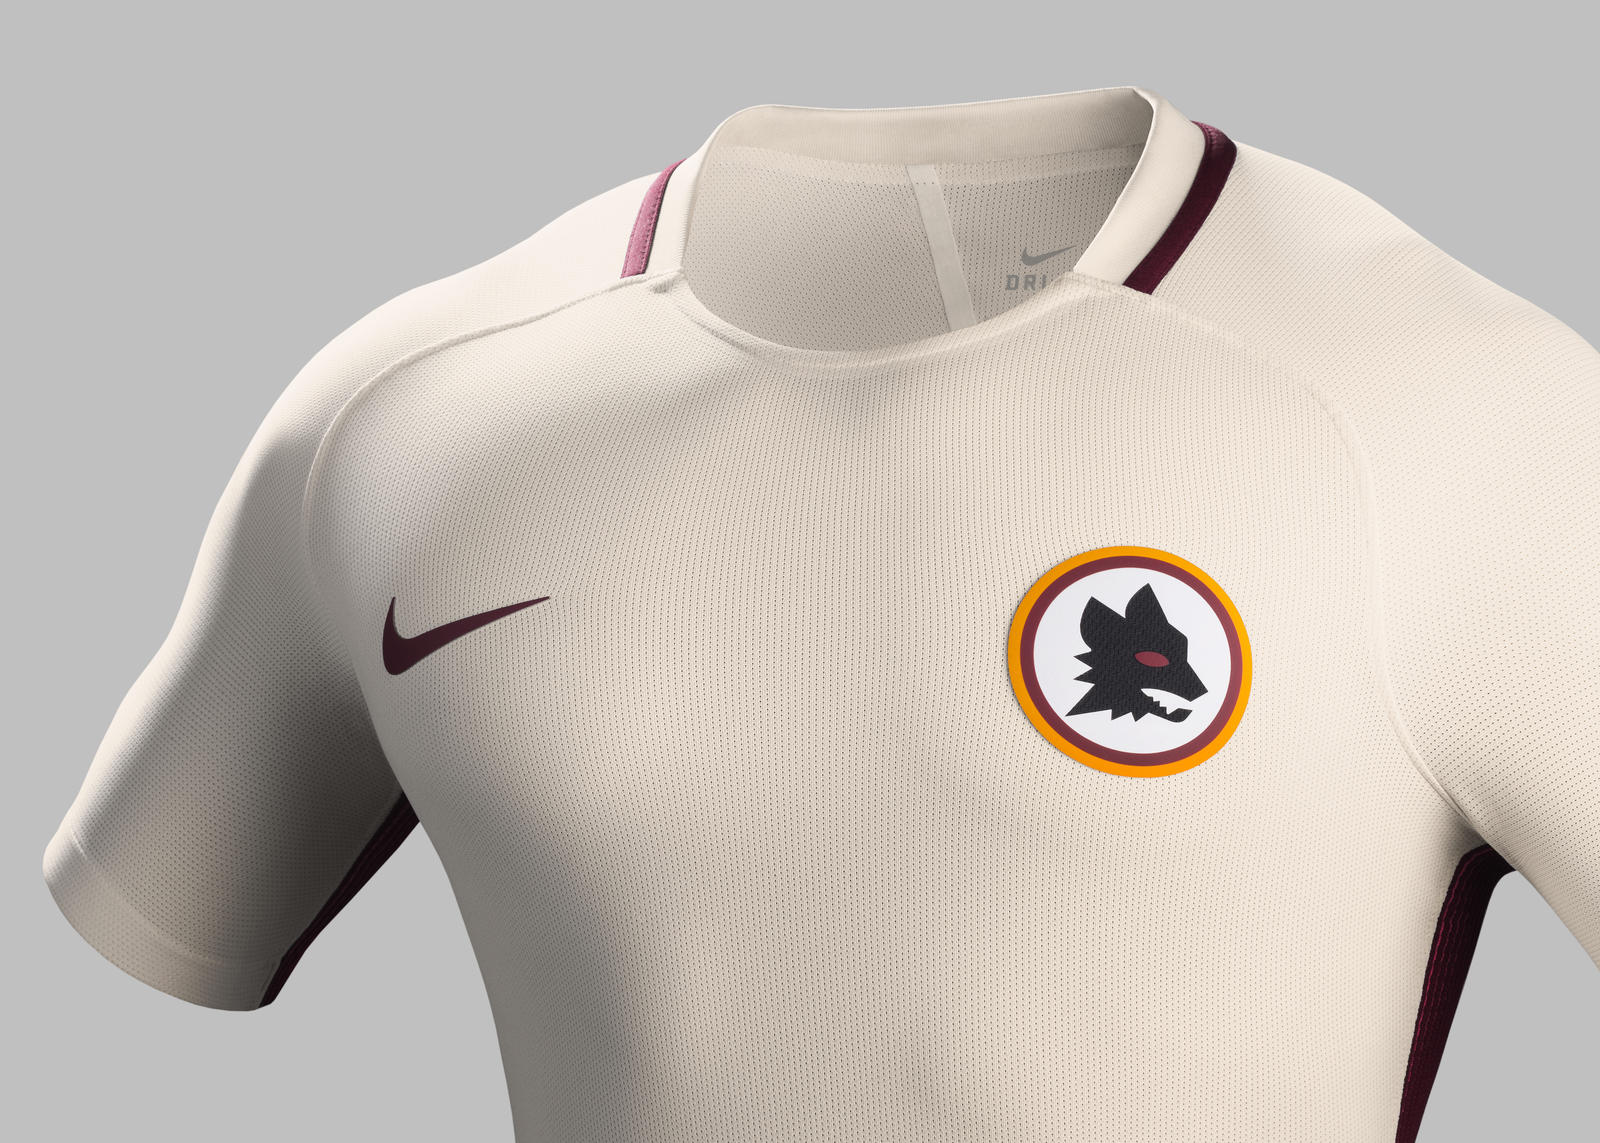 Su16 ck comms a crest match as roma r rectangle 1600